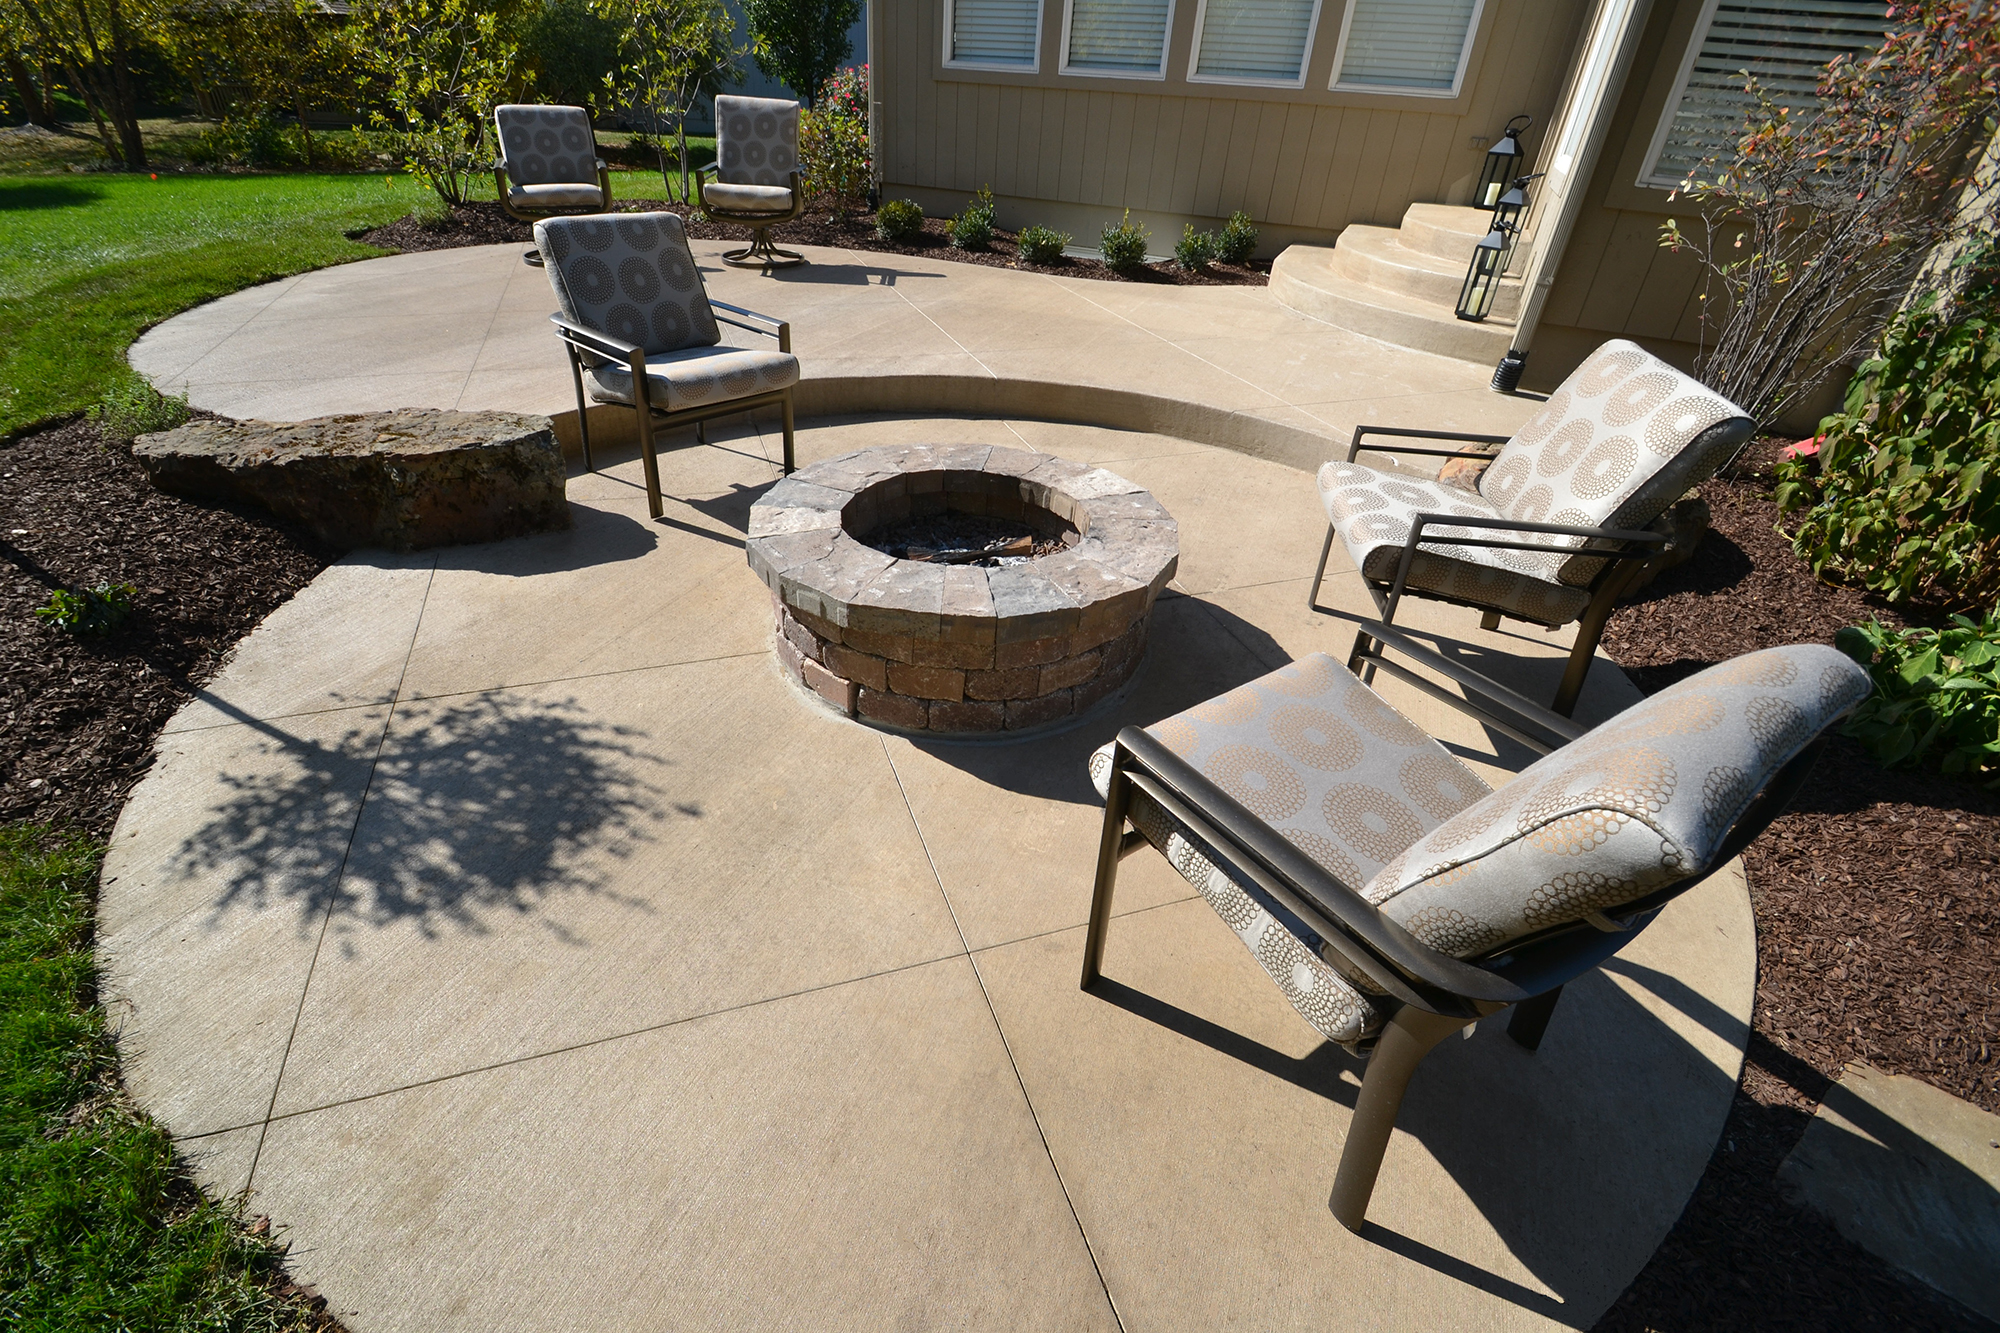 Aesthetic Concrete Designs produces custom concrete designs for your patio or other outdoor space.